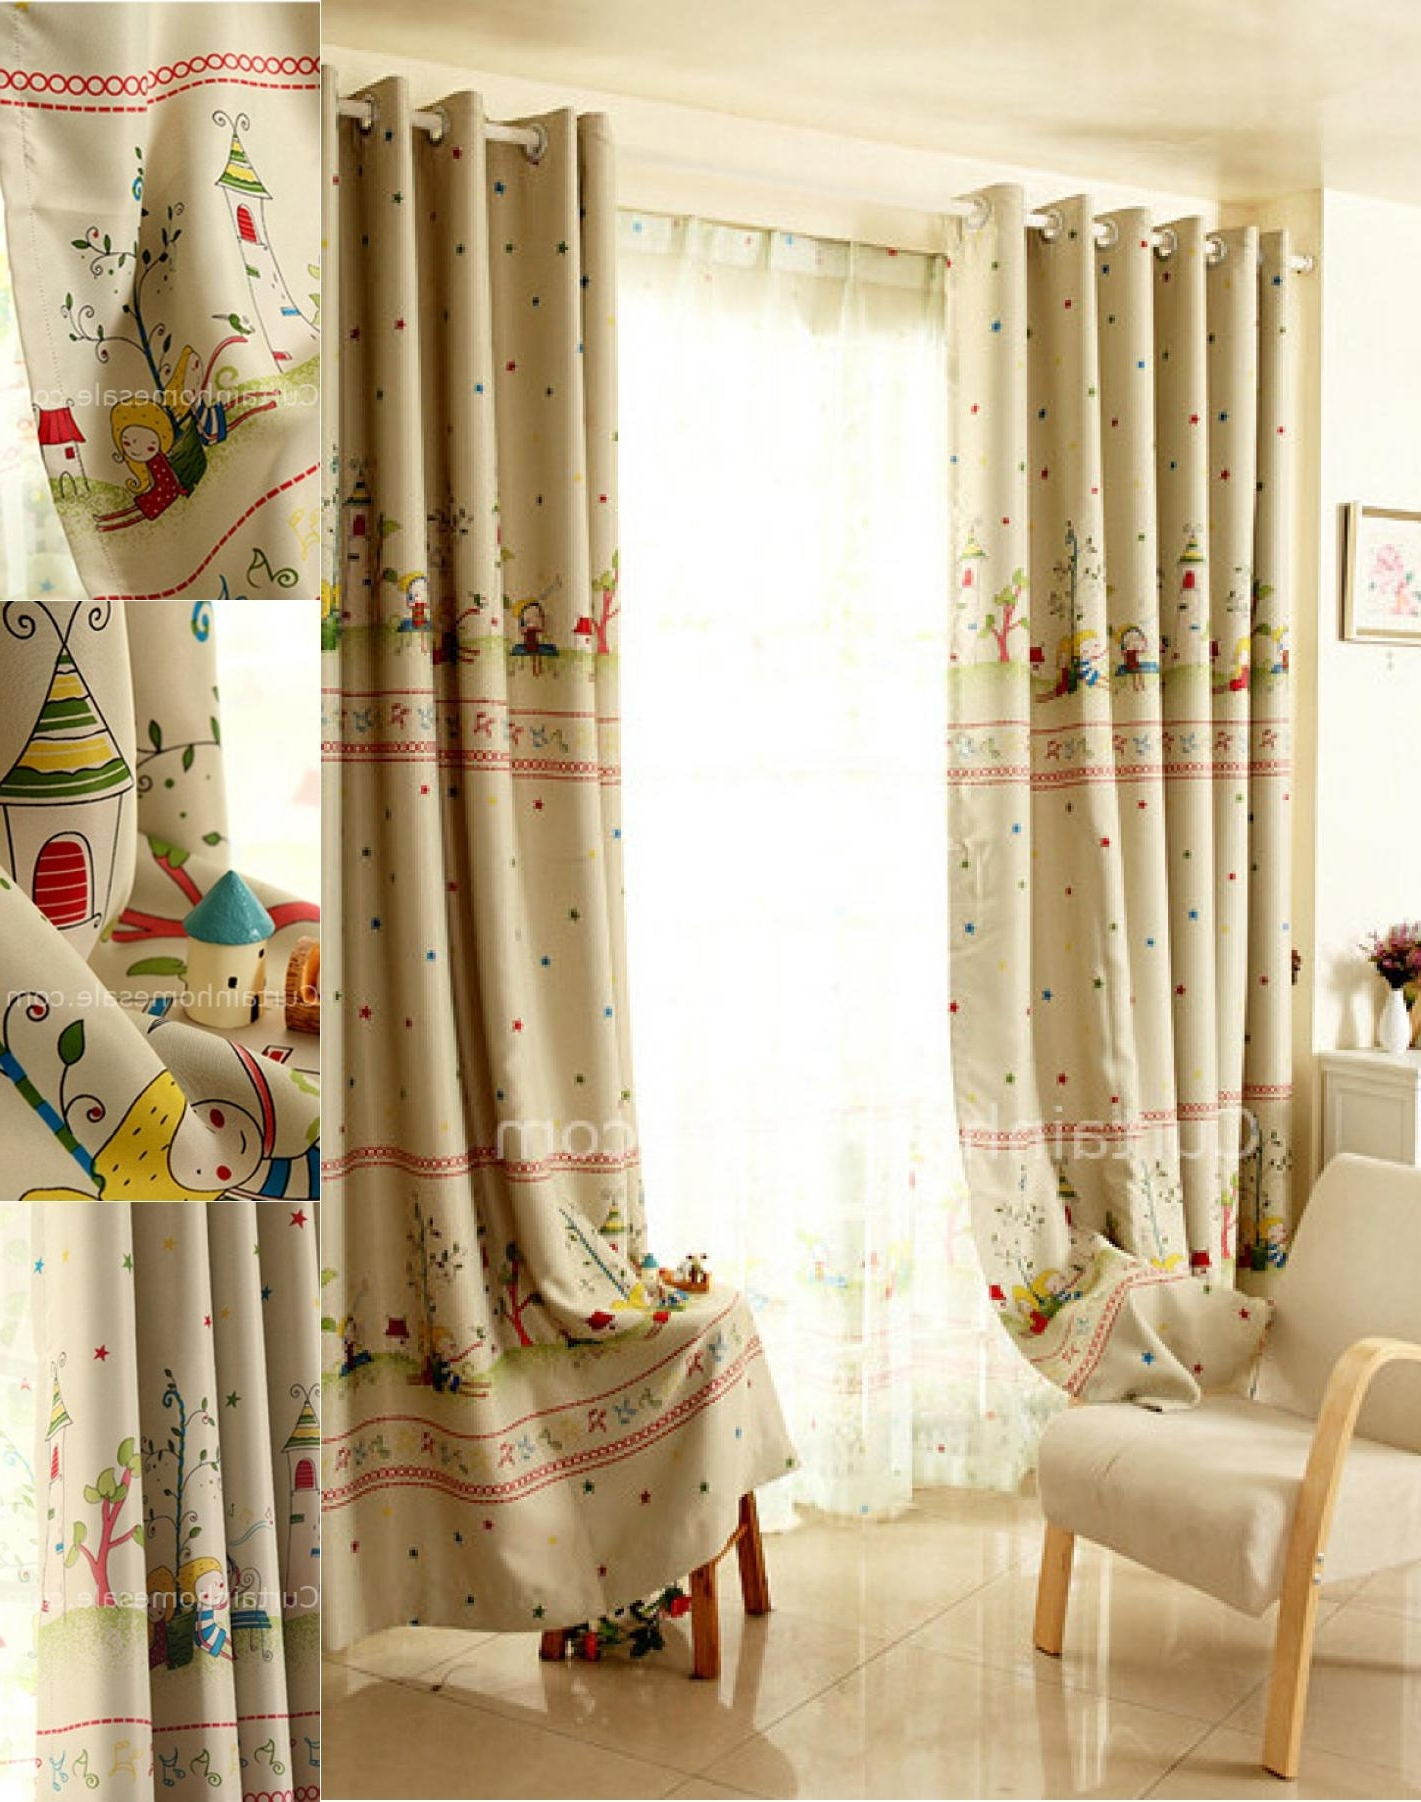 Great Window Covering Ideas For Kids Rooms Blackout Curtains Bedroom Atmosphere Unique Treatment Living Room Kitchen Modern Coverings Half Moon Bathroom Privacy Apppie Org